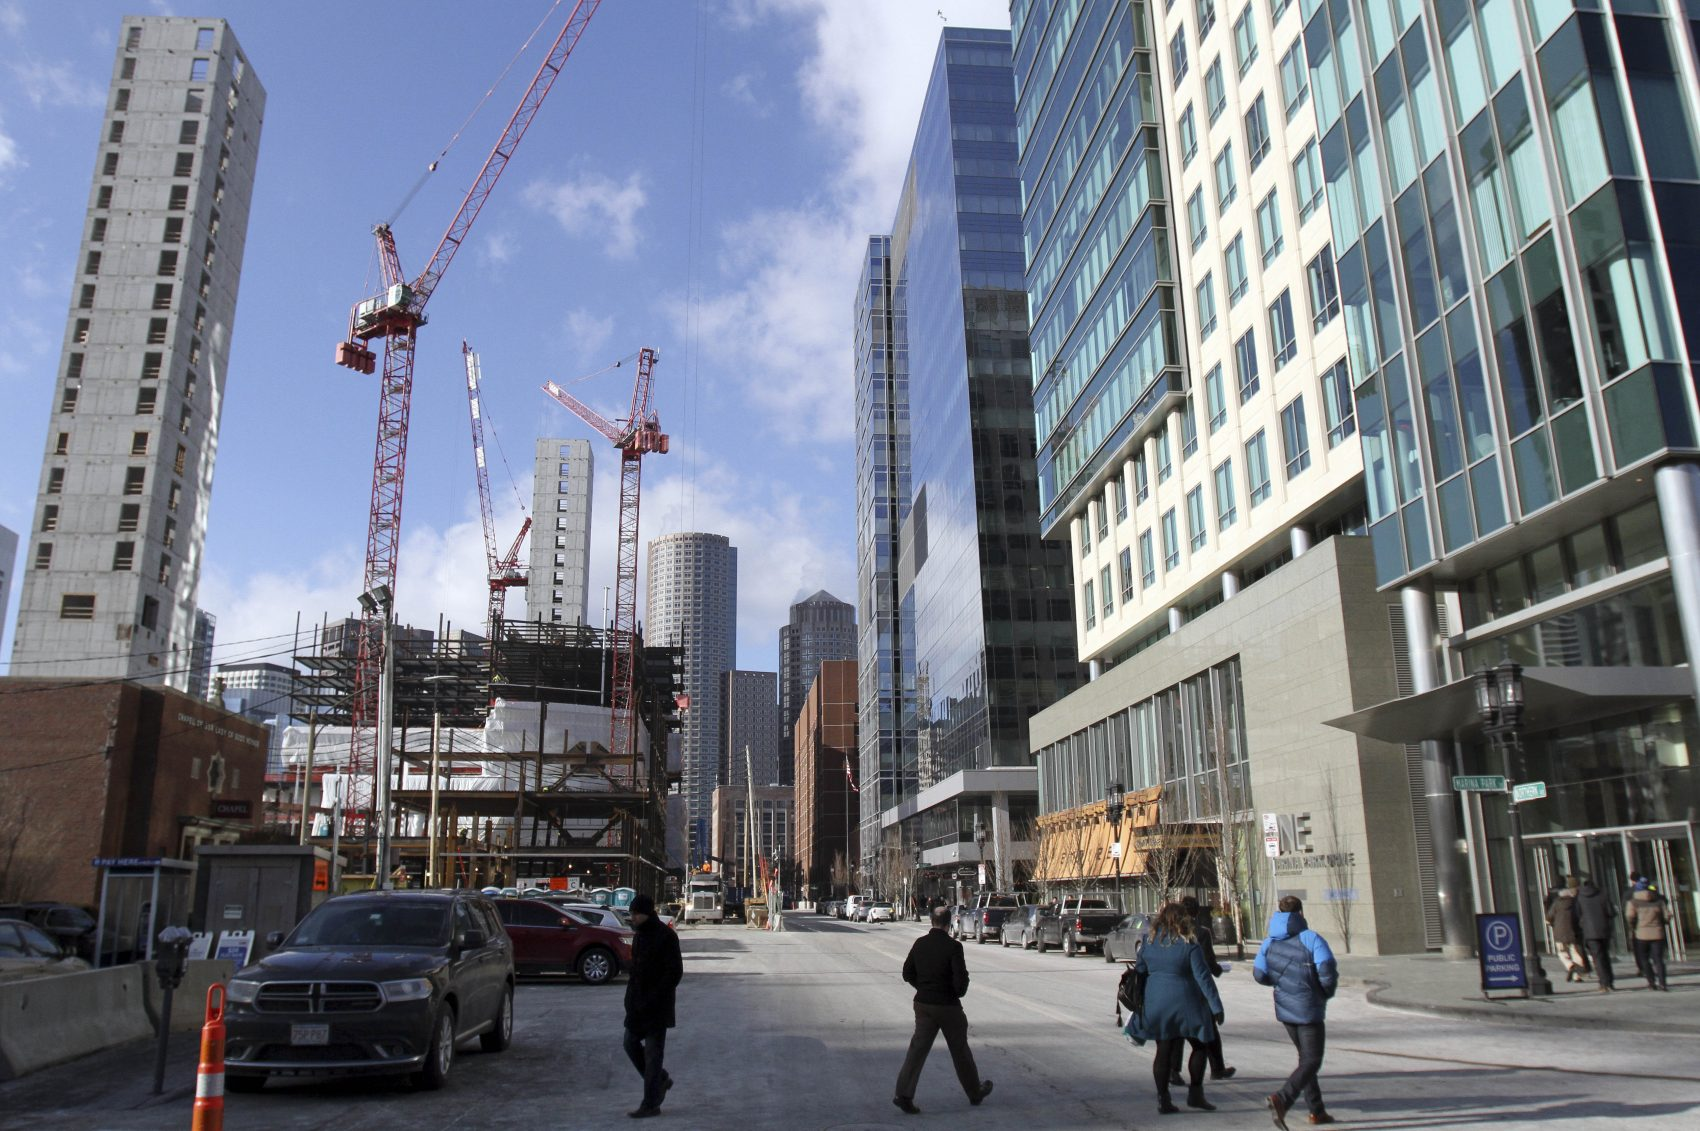 According to two recent city reviews, Boston is exceeding its housing goals, bolstered by new concentrations of affordable middle-income stock in some of its least affordable neighborhoods, like the Seaport District, pictured here. But progress is slower outside of the city core. (Bill Sikes/AP)